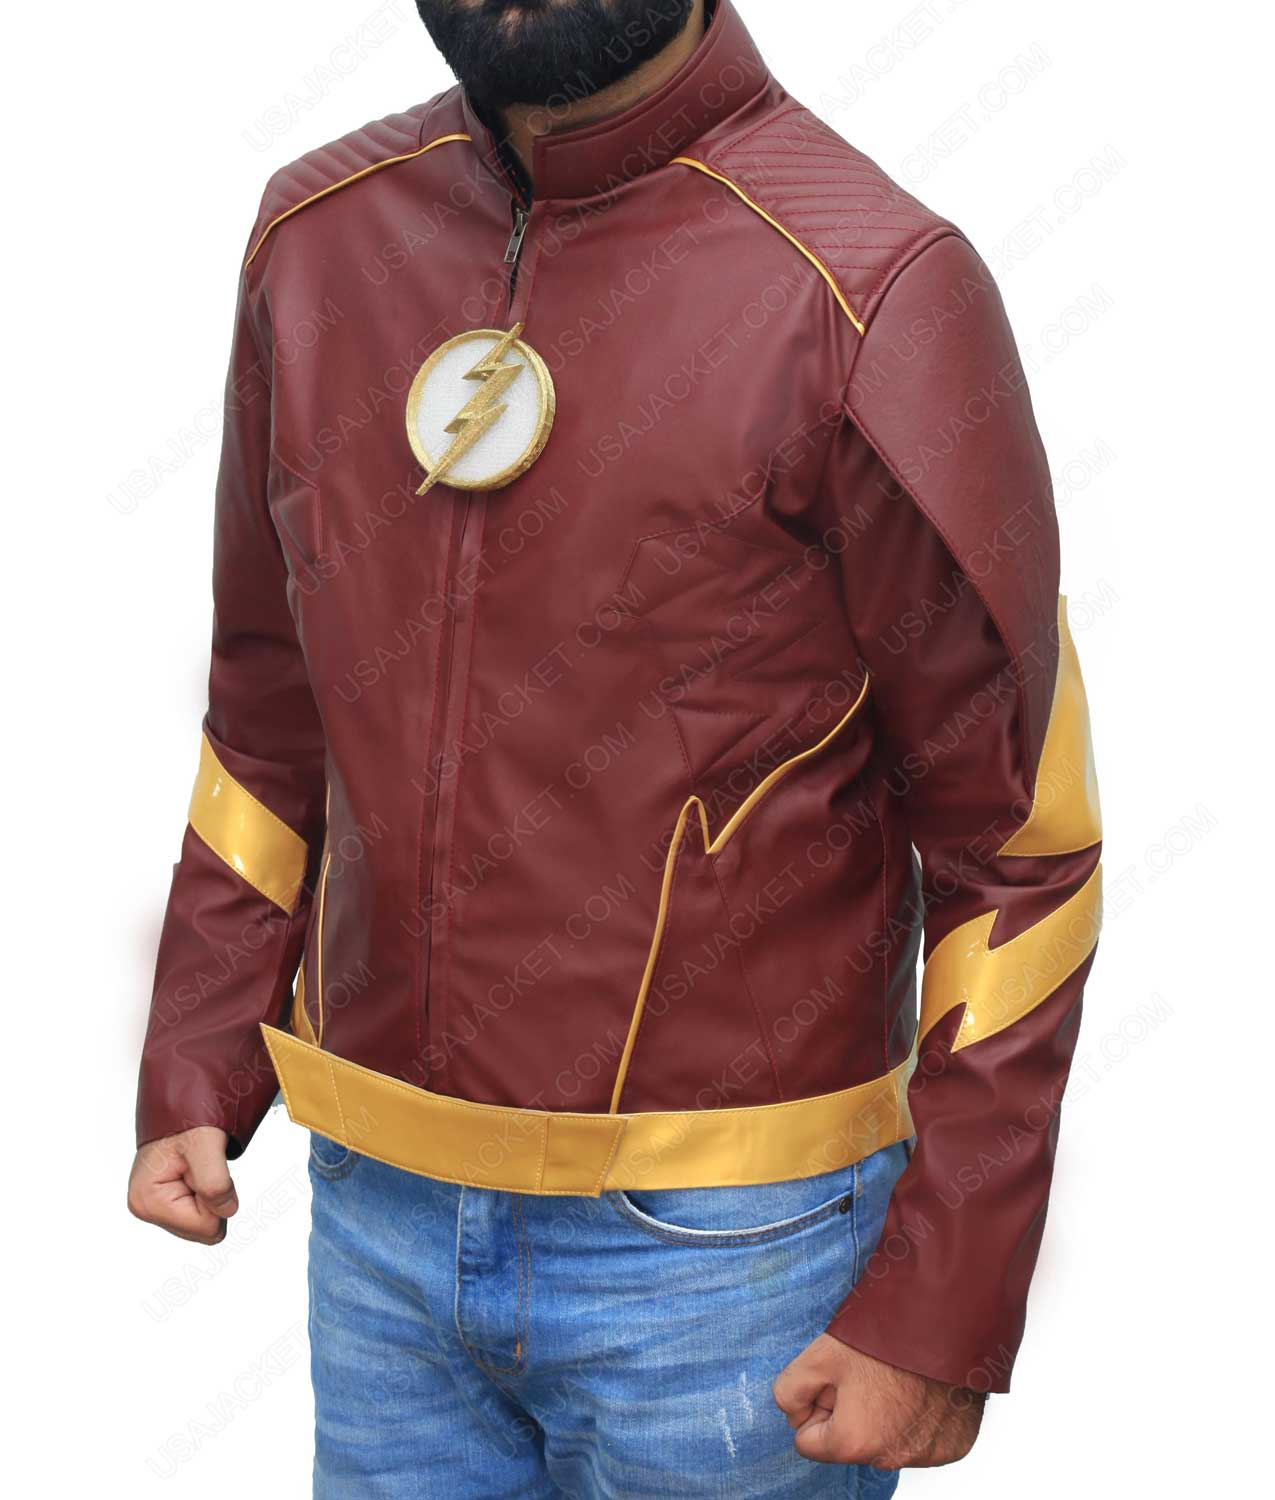 how to get the future flash costume